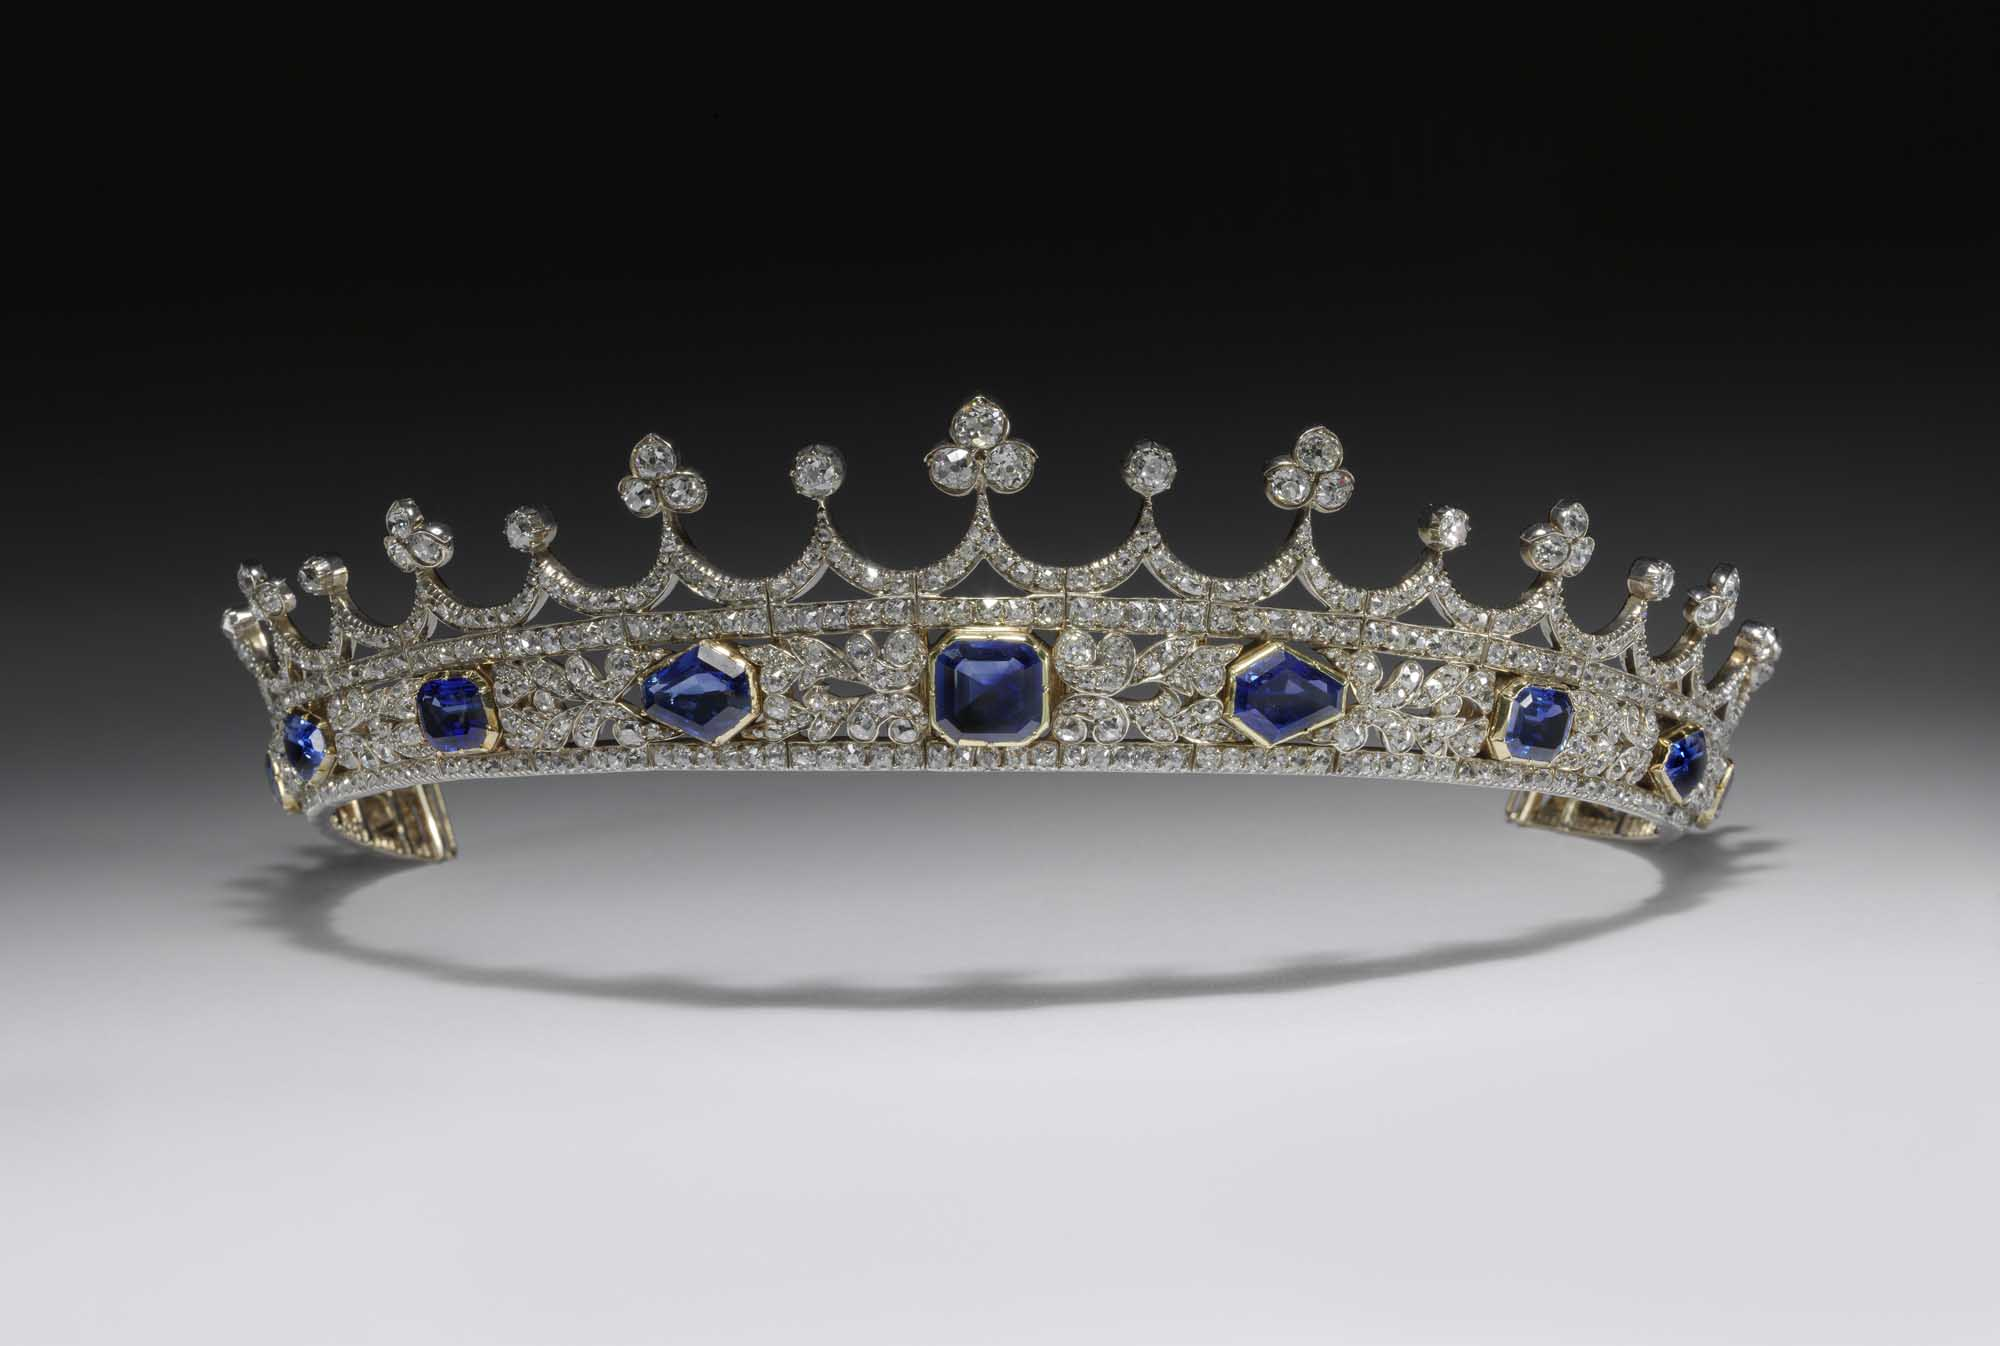 a photo of a coronet with saphires and diamonds